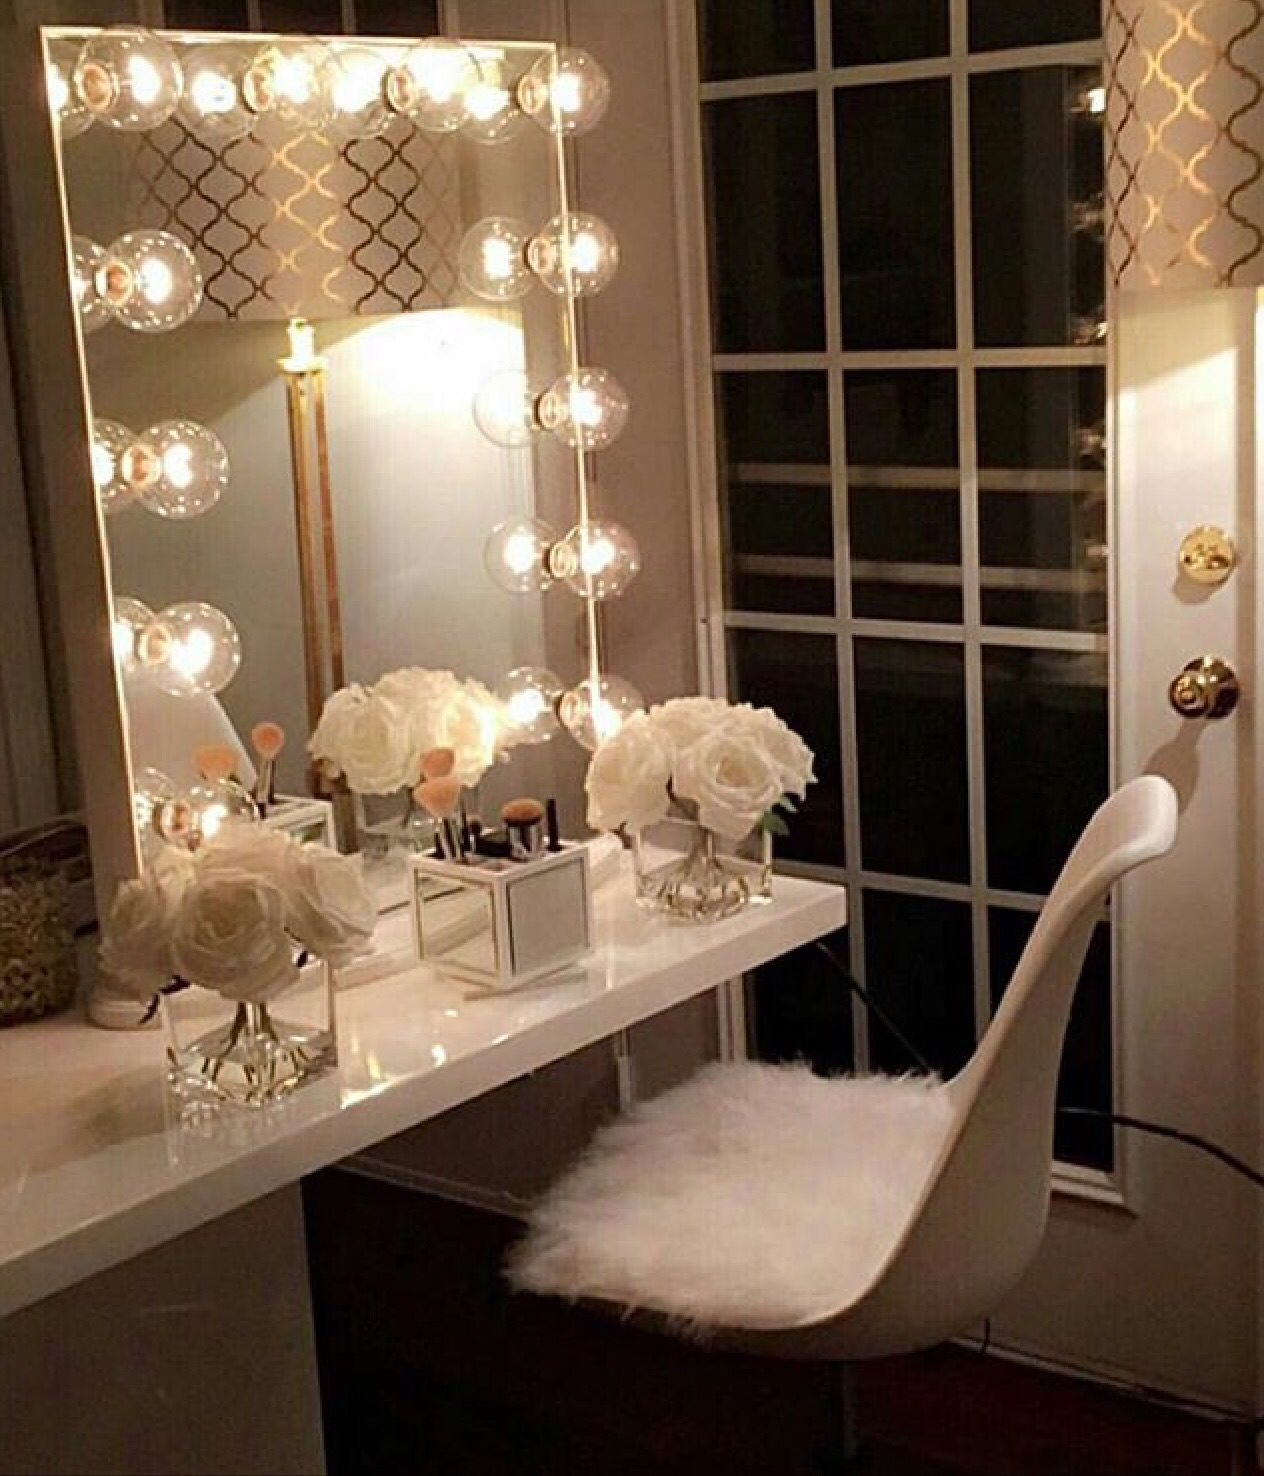 Makeup Table Perth Crisp Classy Vanity Beauty Room Room Decor Bedroom Decor